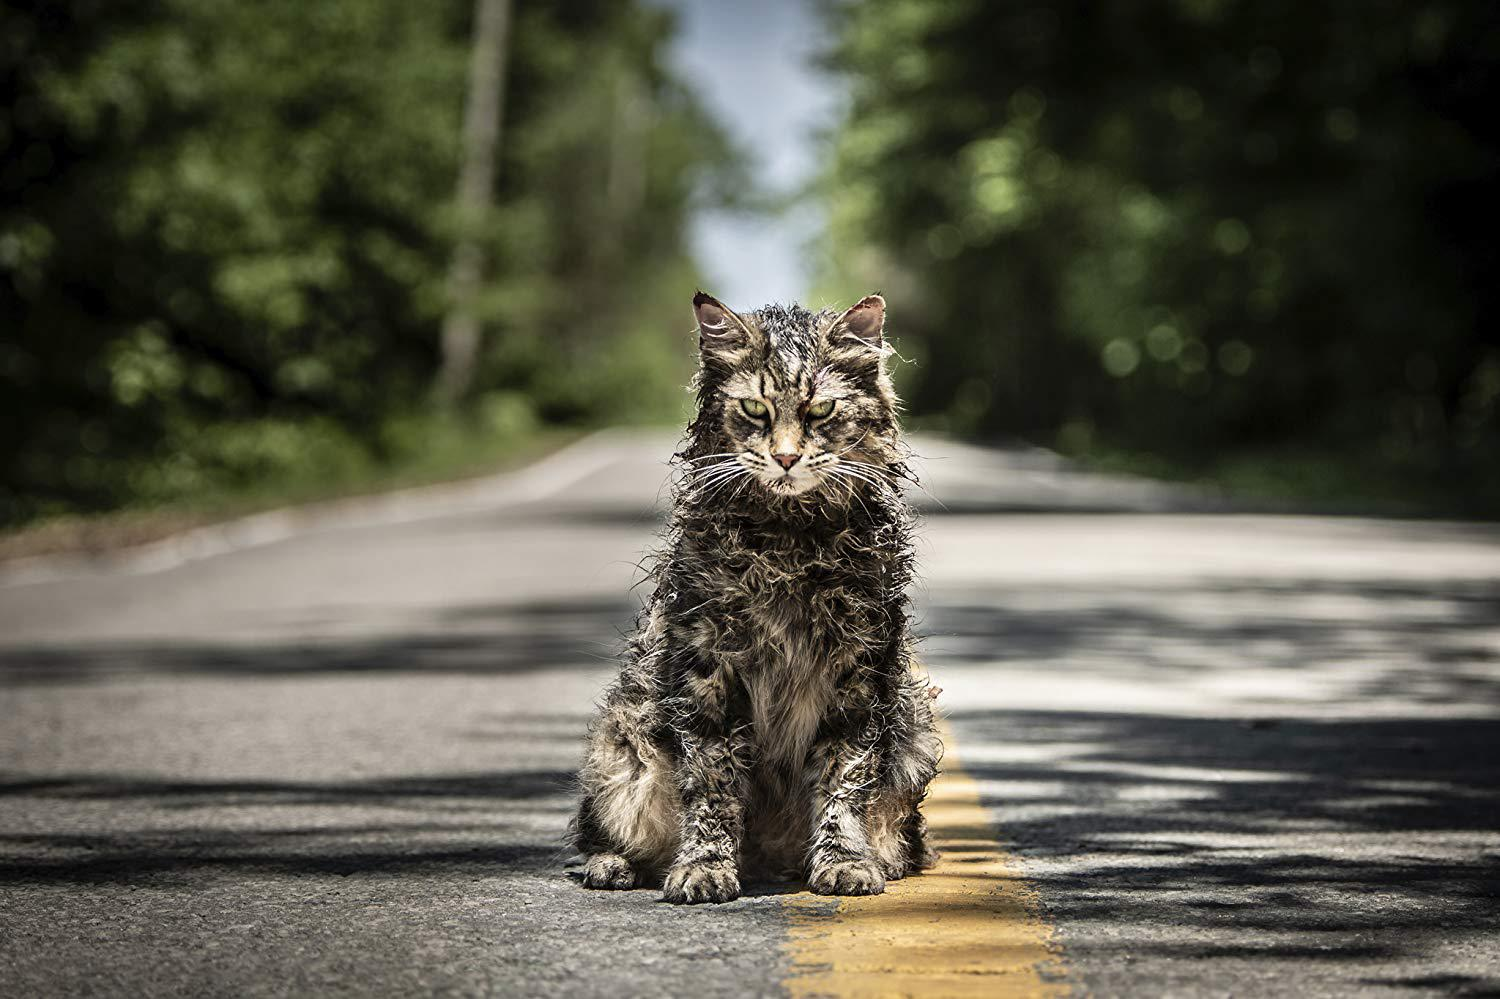 Home video: 'Pet Sematary' now on digital